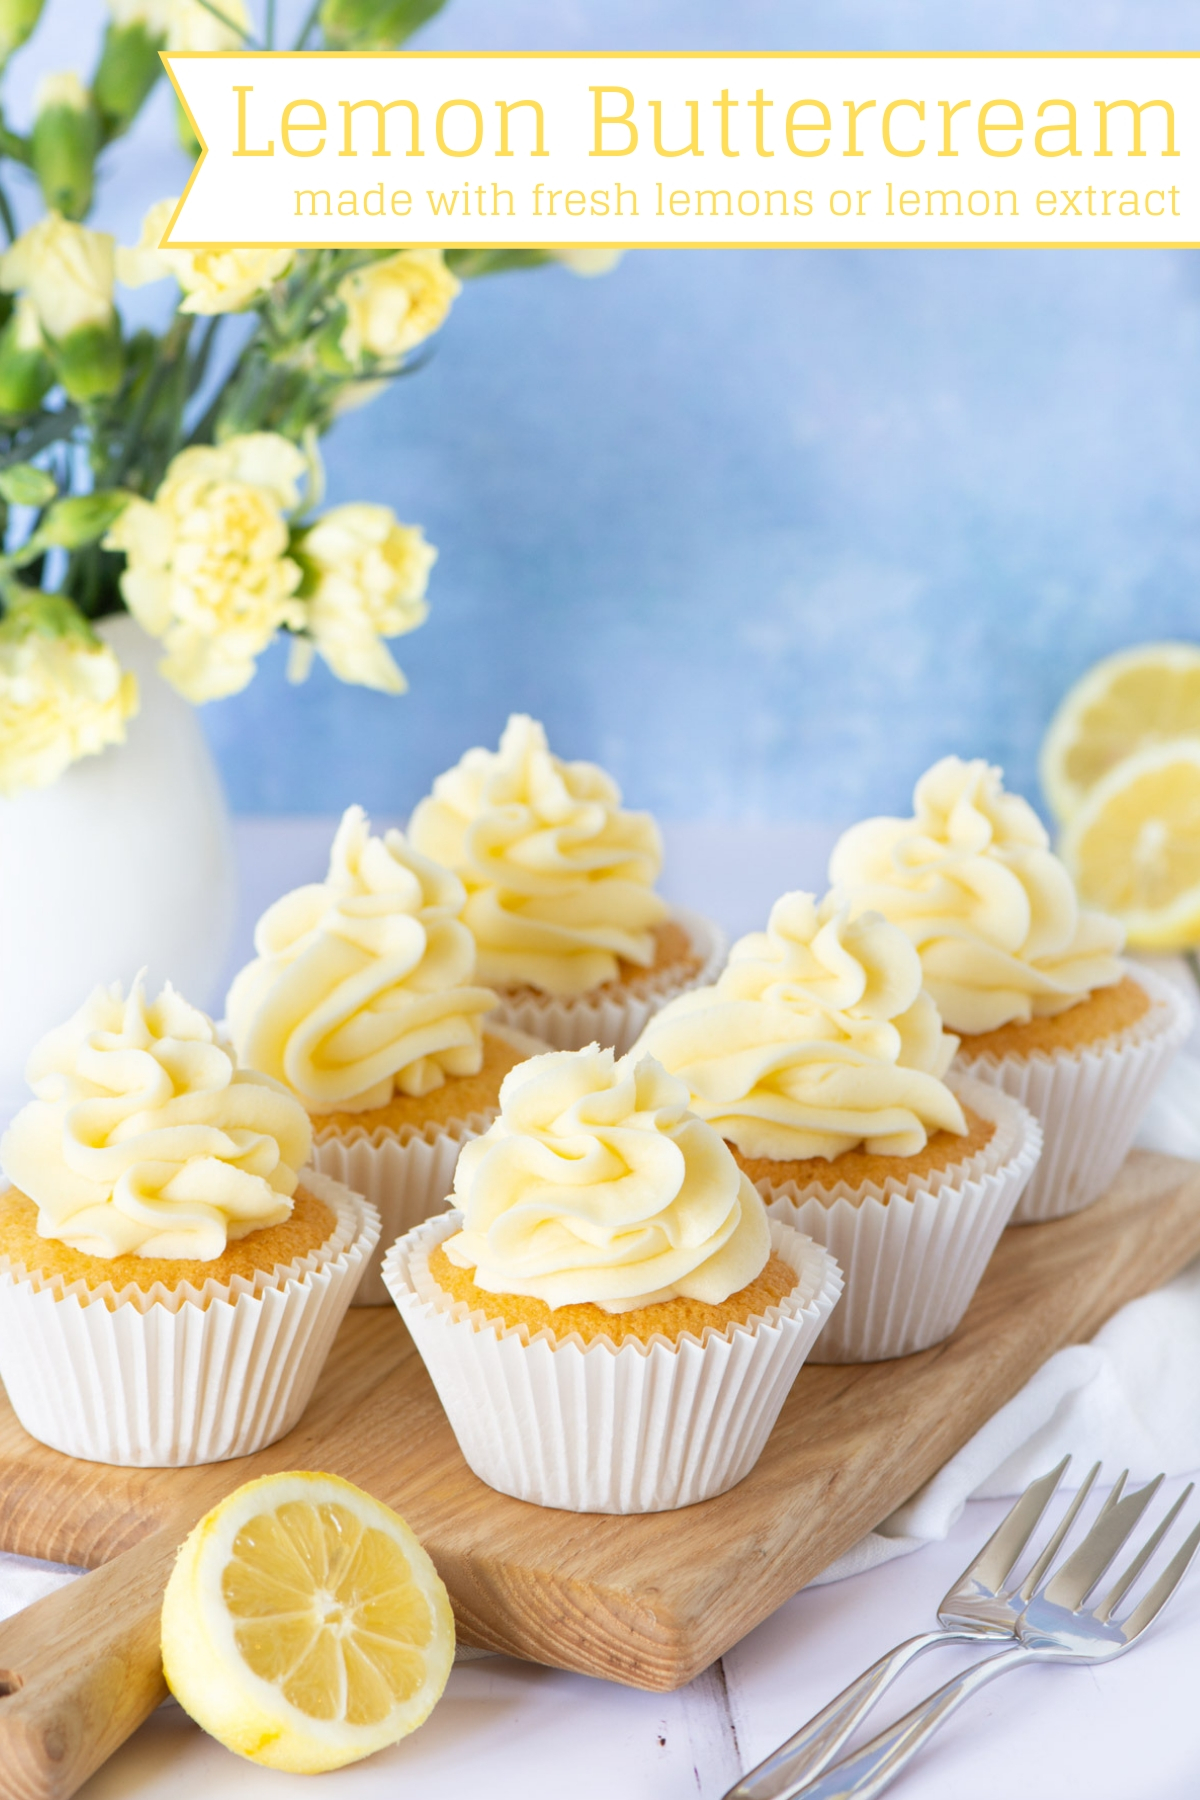 Two different versions of my delicious lemon buttercream - one made with fresh lemons (juice and zest) and another made with either lemon extract or oil. Perfect for decorating cakes and cupcakes or filling biscuits and macarons.